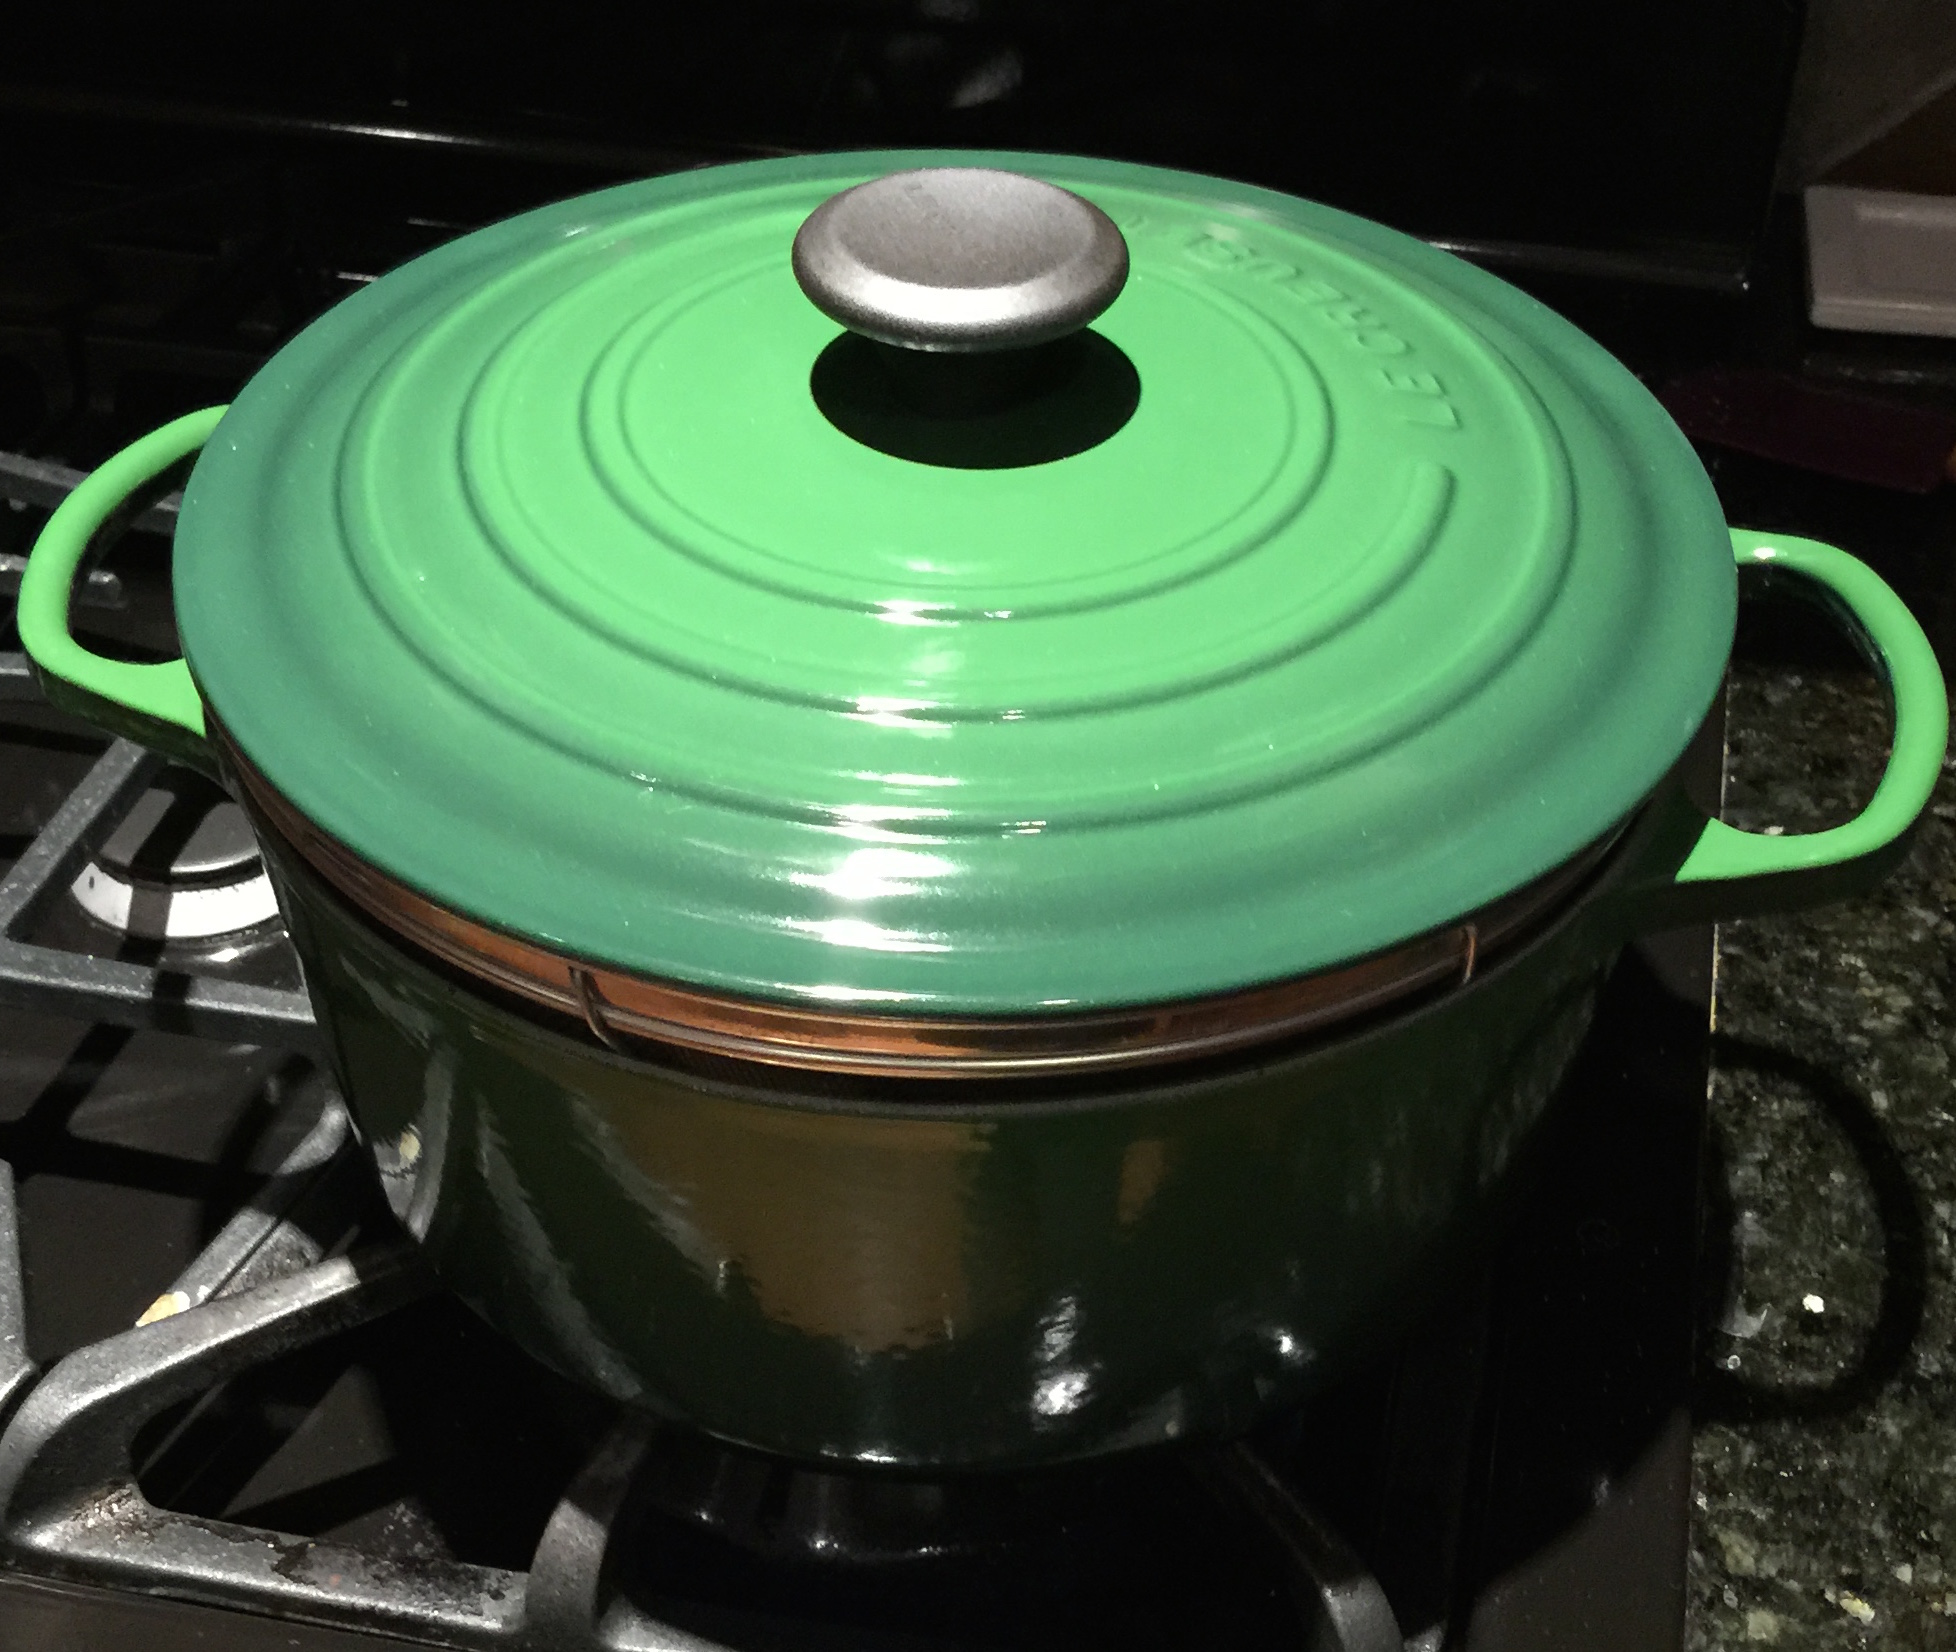 Put Lid on Dutch Oven to Steam Butternut Squash